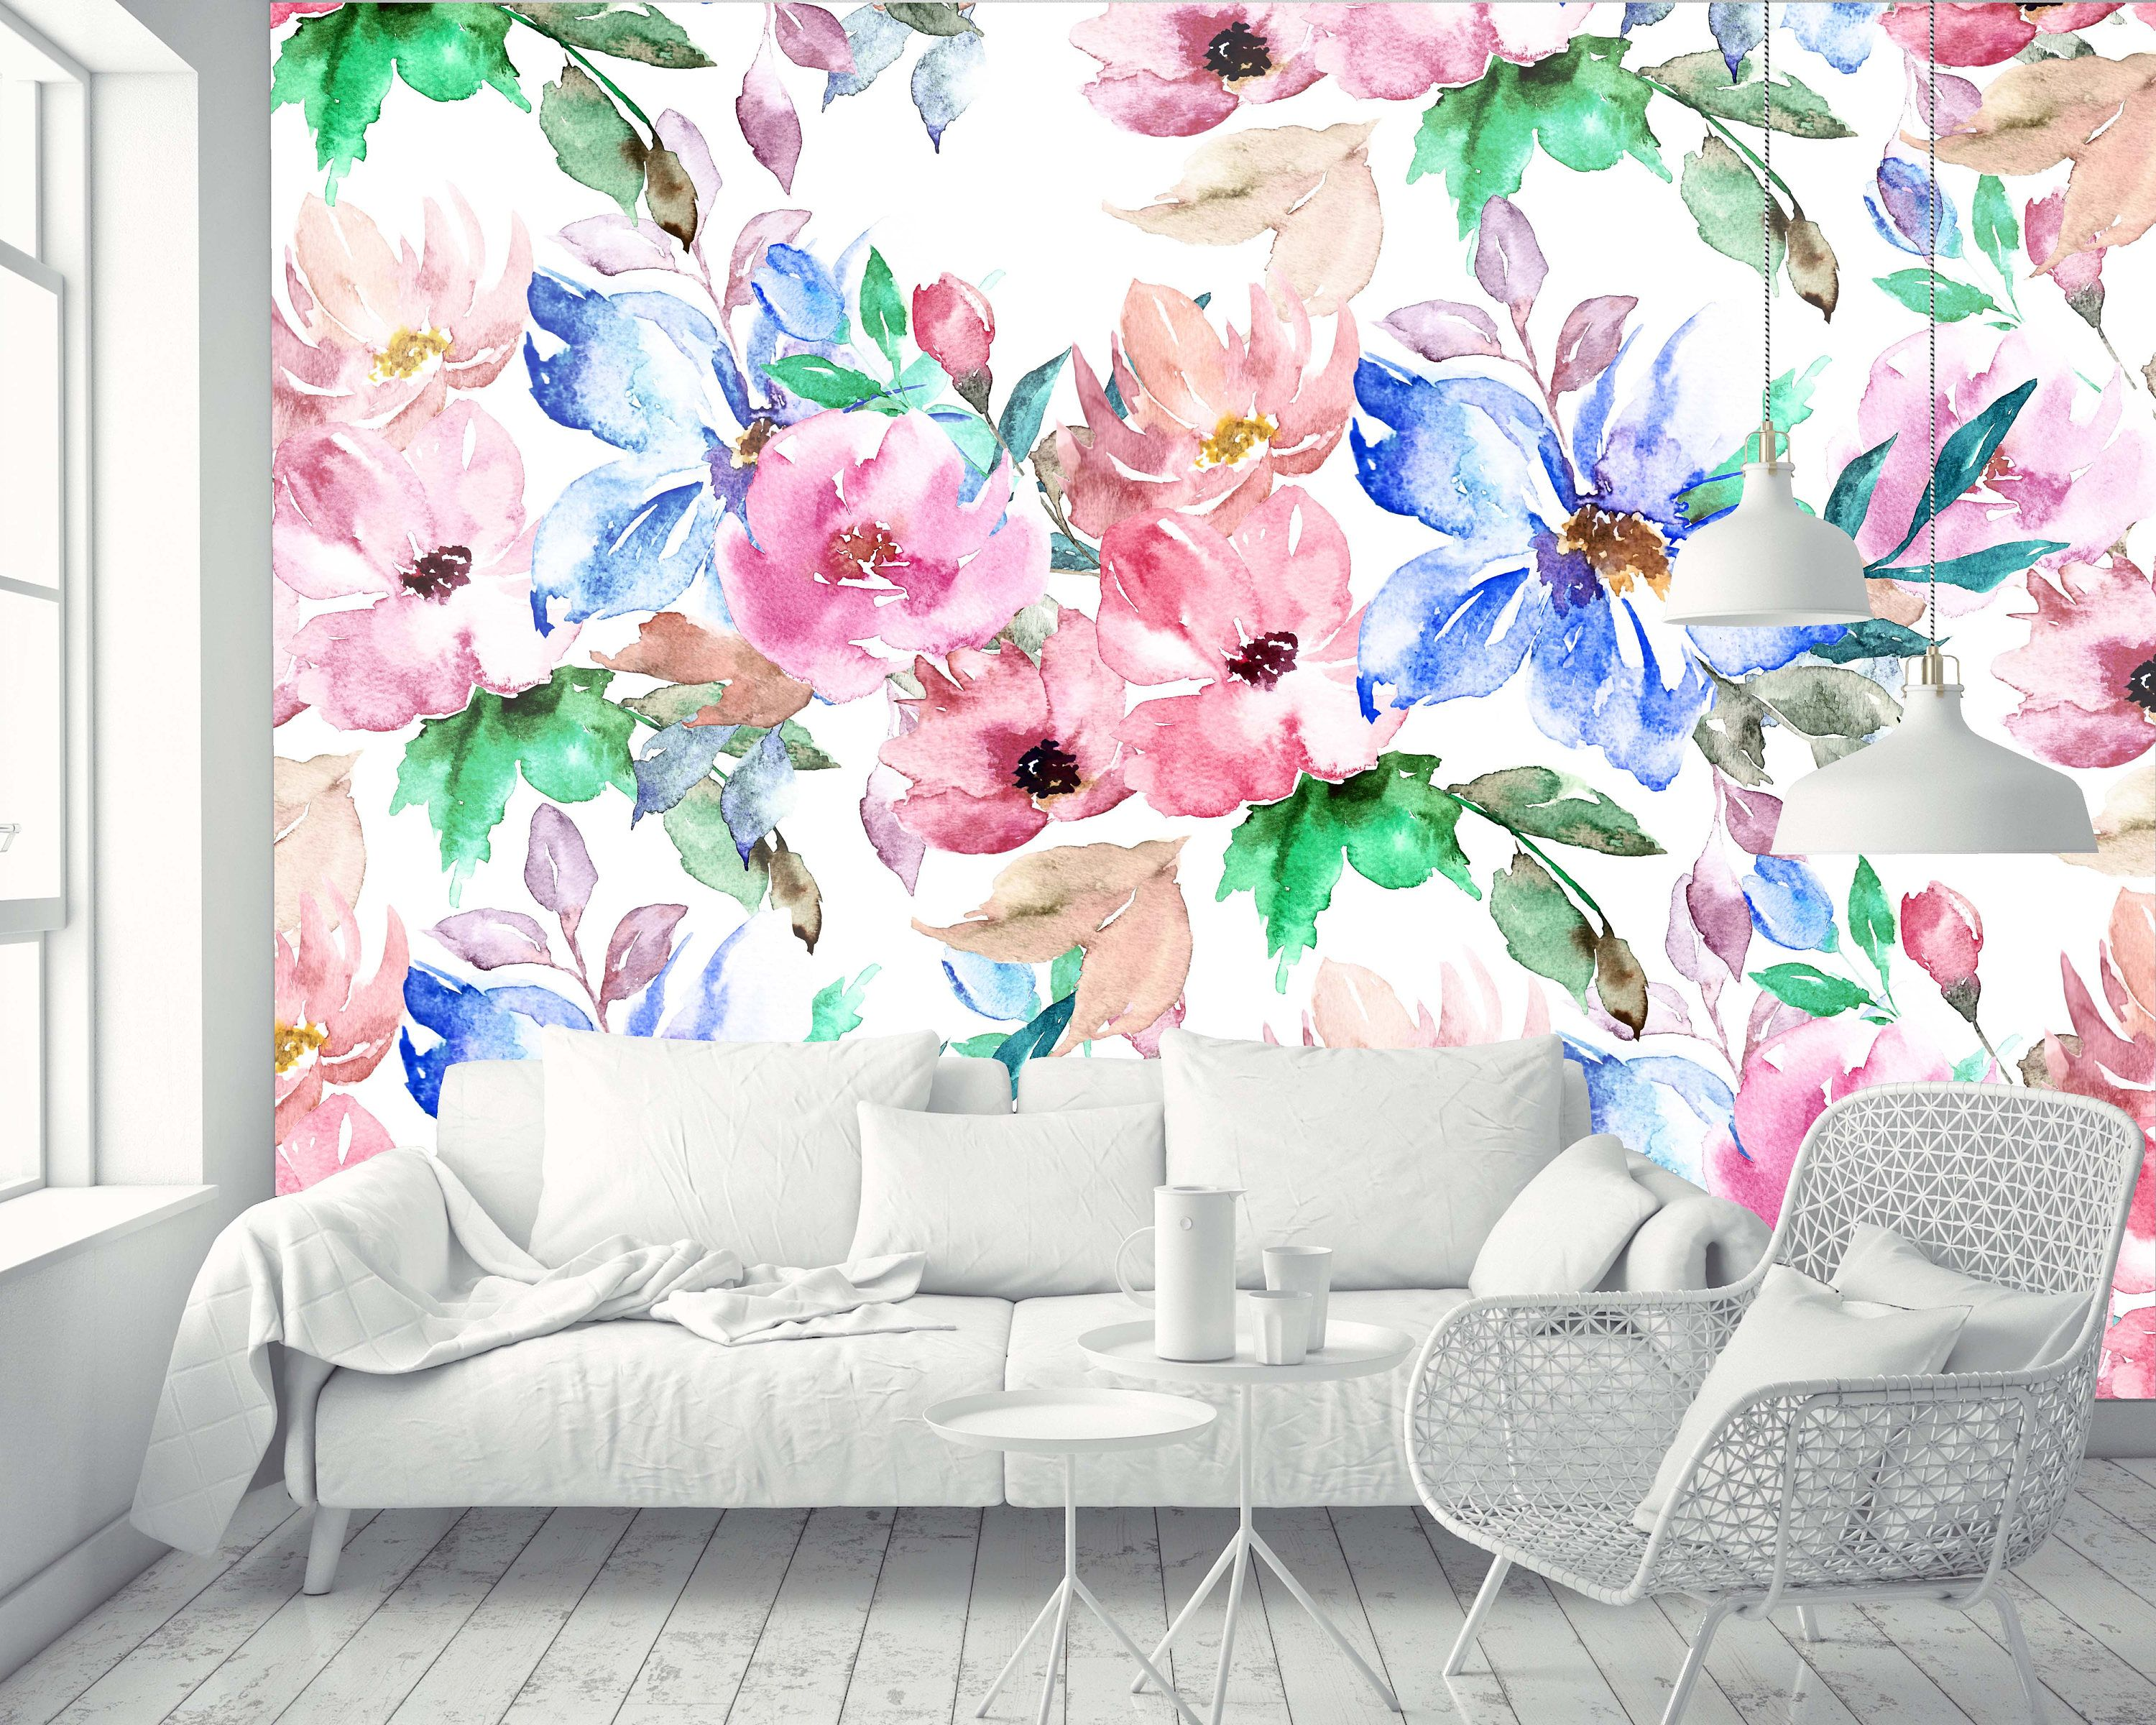 Removable Wallpaper Mural Peel & Stick Nursery Wallpaper